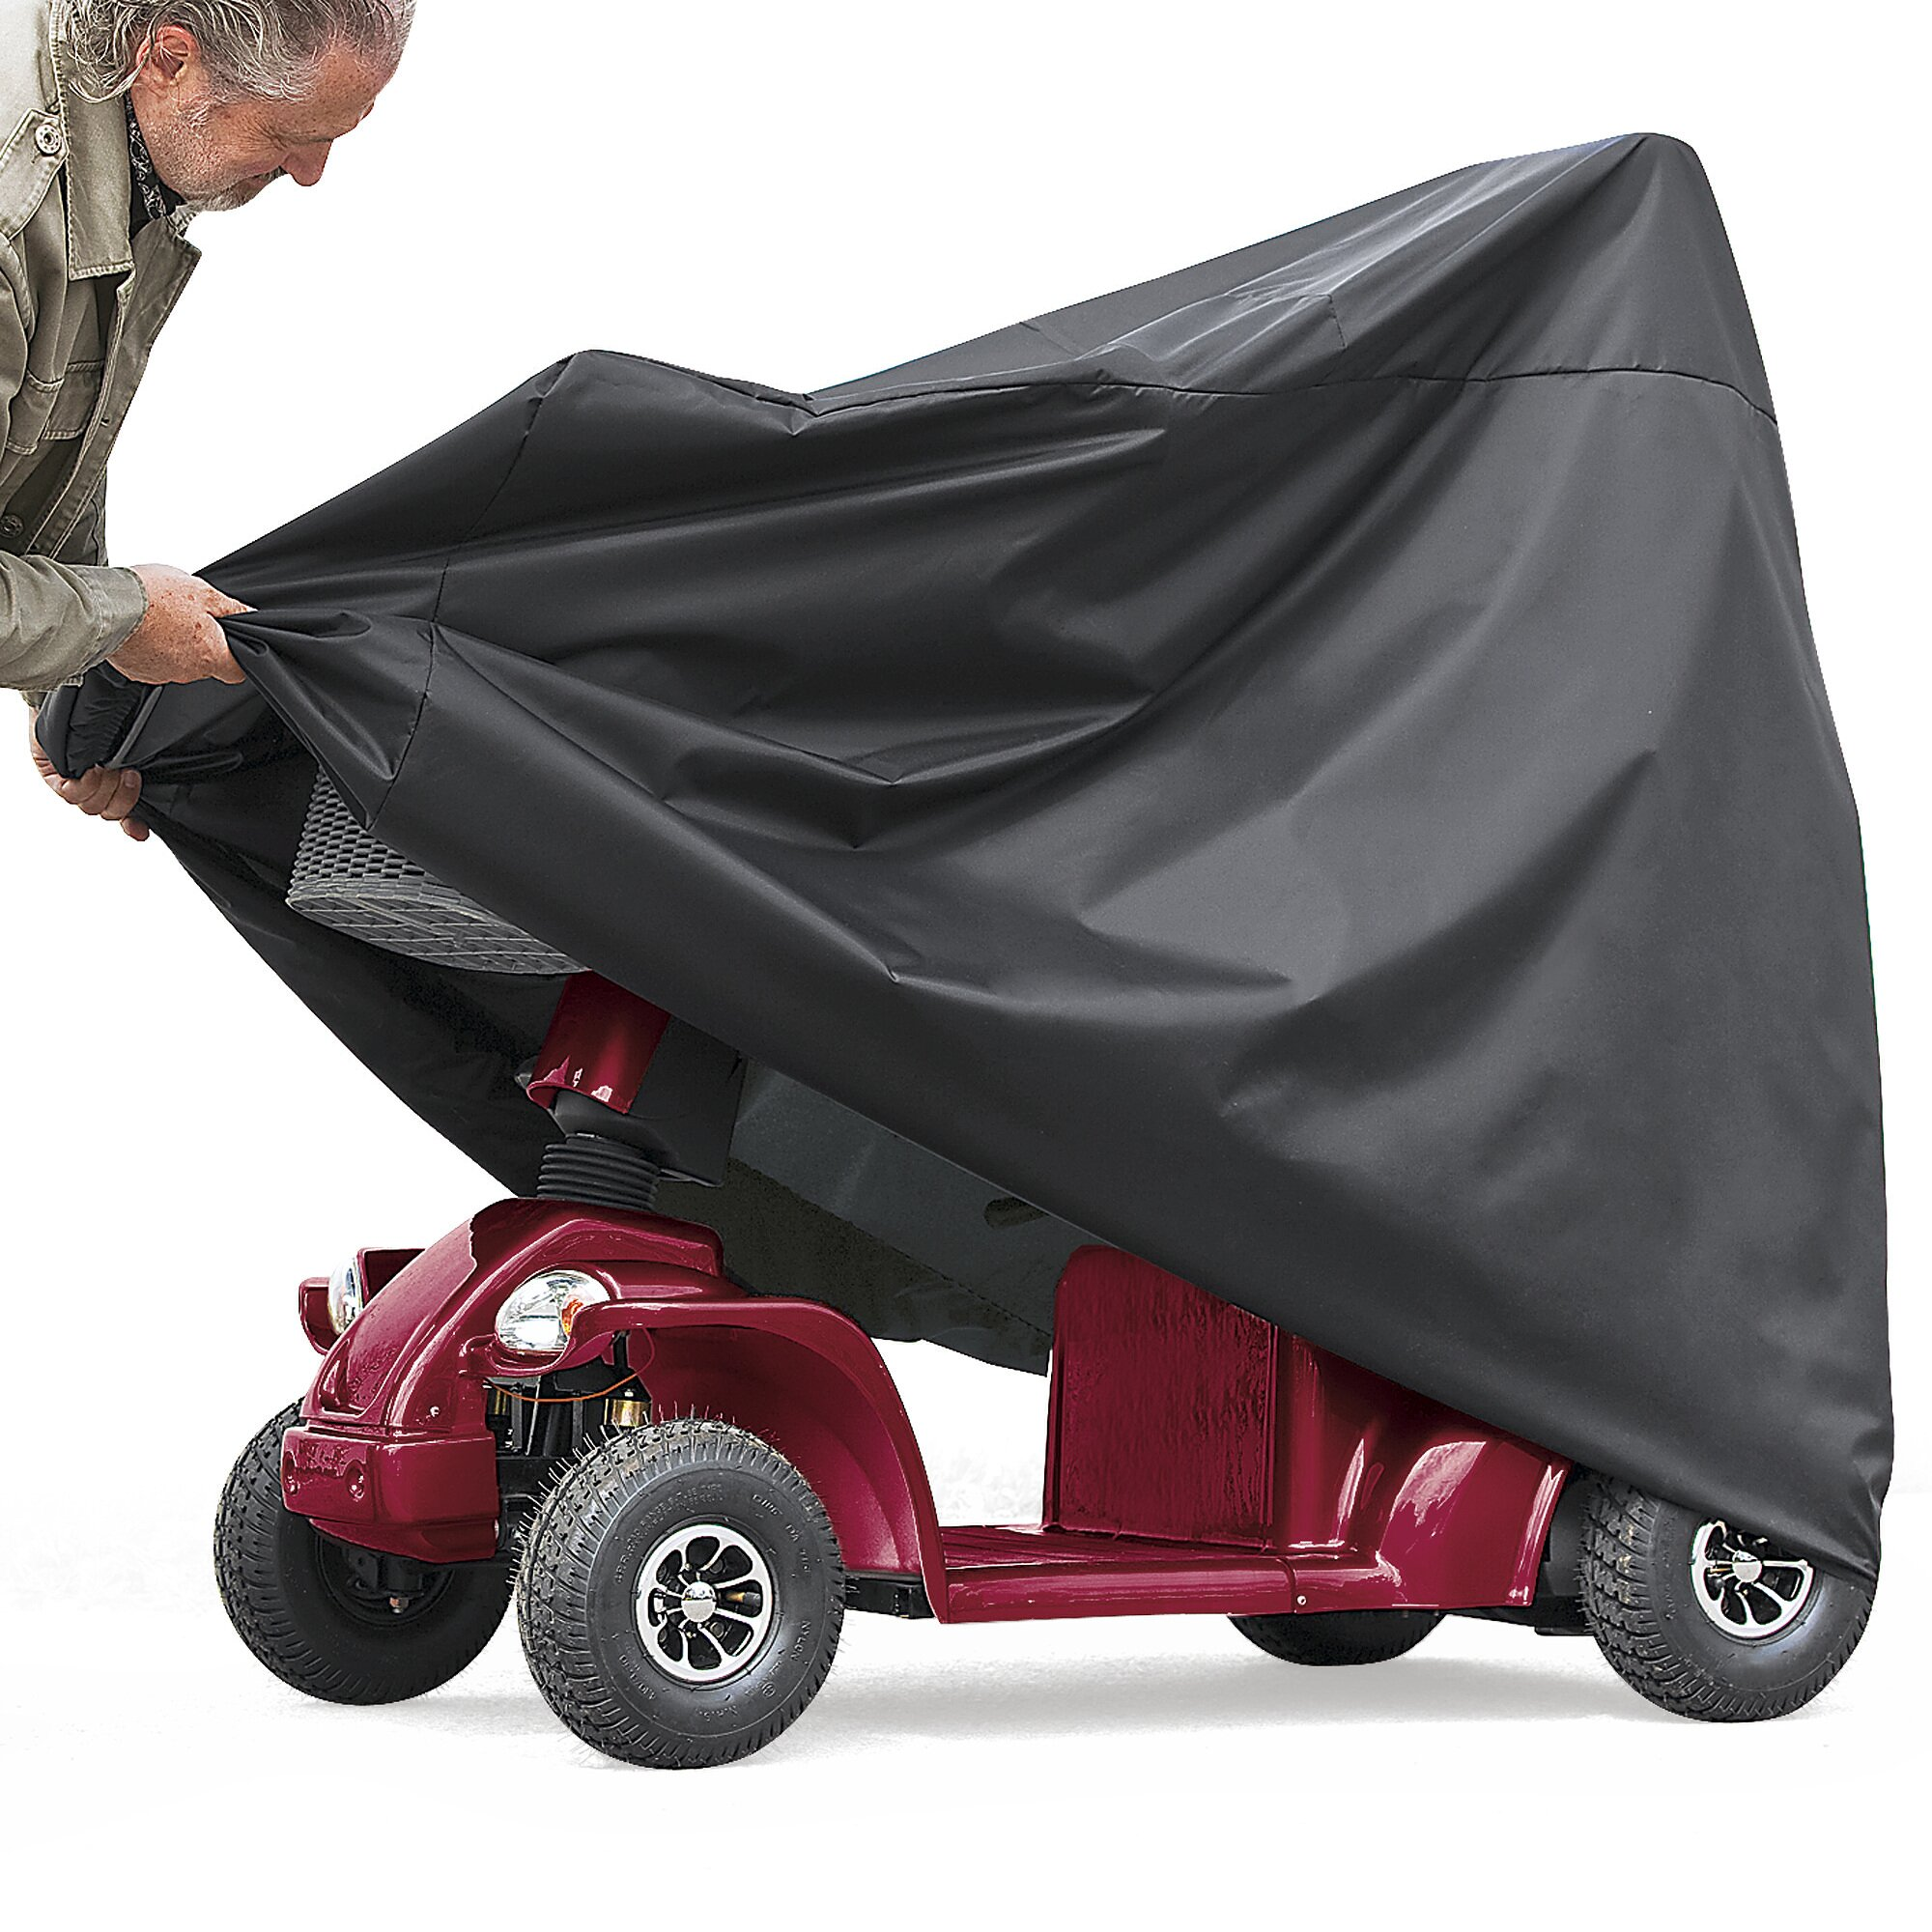 Image of Scooter-Garage